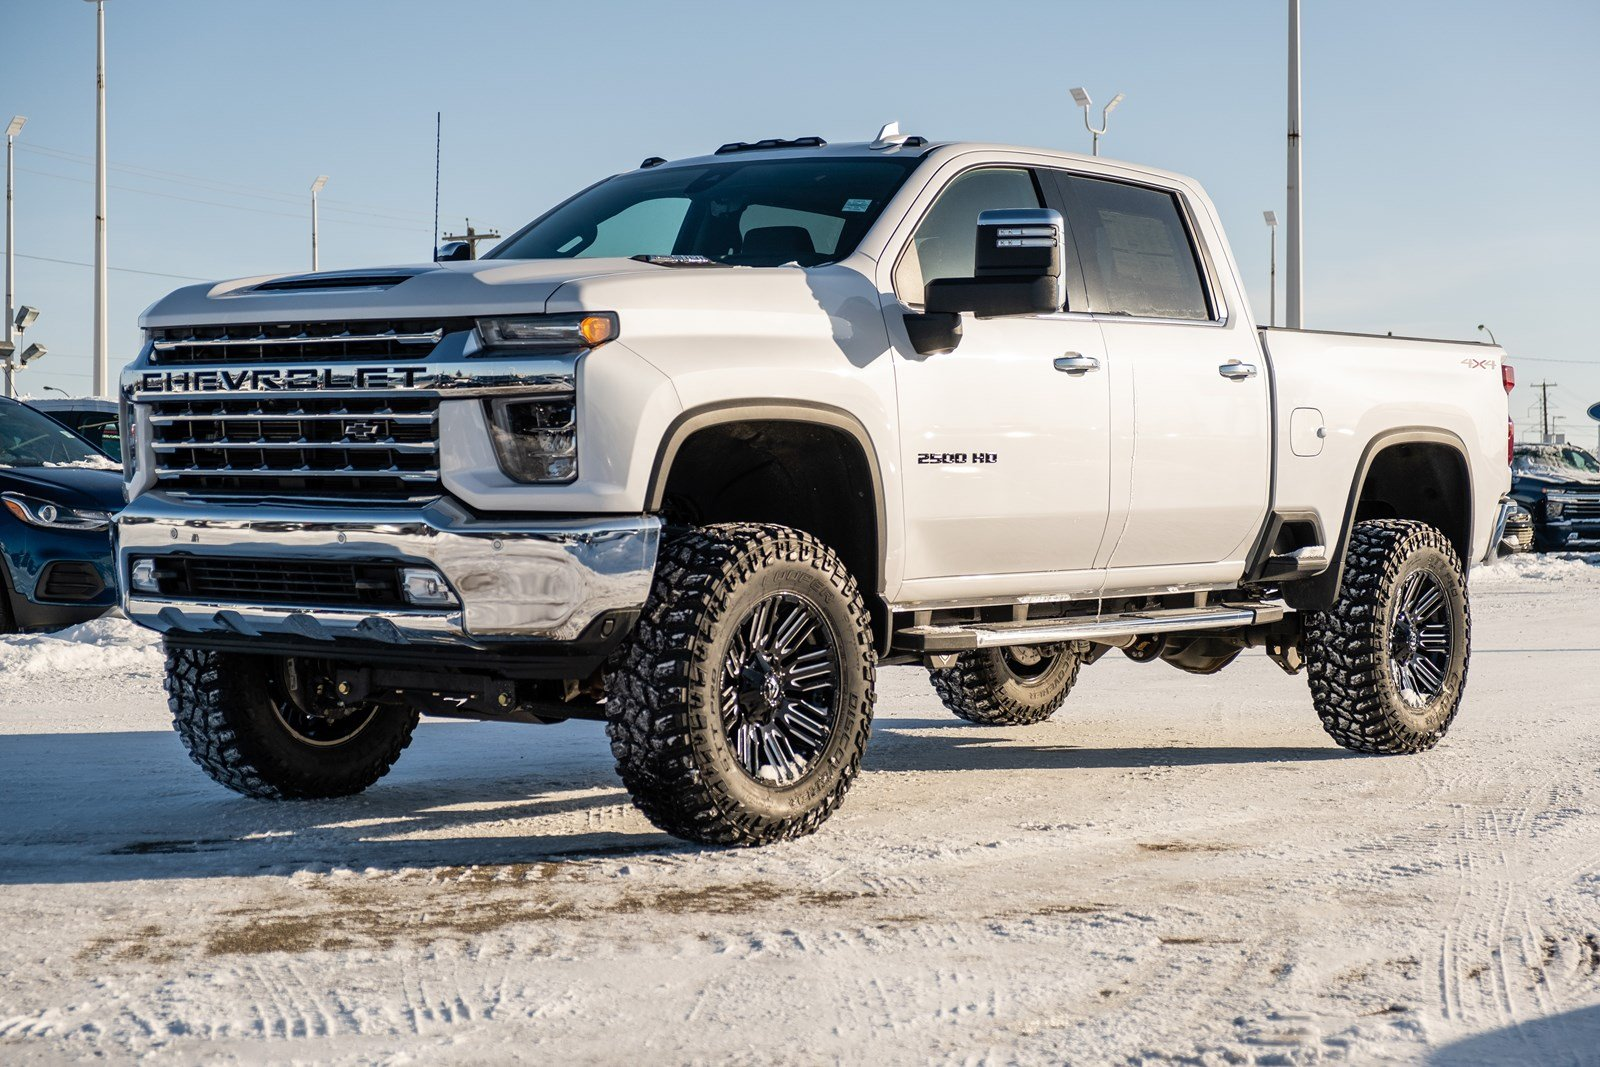 New 2020 Chevrolet Silverado 2500HD LTZ | 6in Lift, 22in Fuel Wheels, Tonneau Cover 4WD Crew Cab Pickup